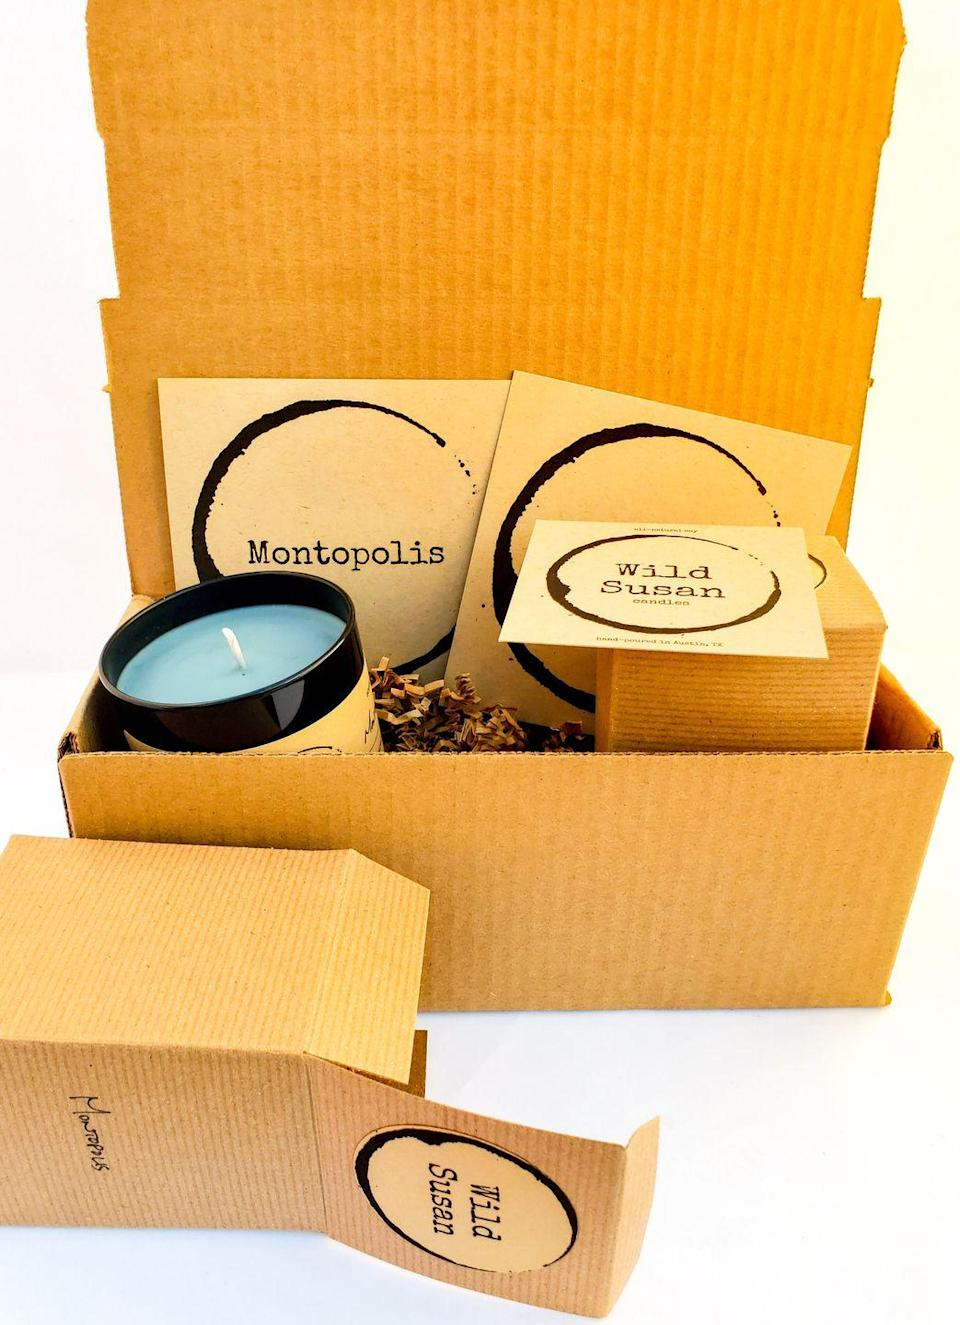 """<p><strong>Perfect for:</strong> the clean candle lover. Created in Austin, each candle you'll receive is made from soy wax, cotton wicks, and phthalate-free fragrance. A month-to-month subscription for a two-candle box is $51, or you can prepay all at once and save a bit of cash down the line. <a class=""""link rapid-noclick-resp"""" href=""""https://wildsusan.cratejoy.com/subscribe/"""" rel=""""nofollow noopener"""" target=""""_blank"""" data-ylk=""""slk:SHOP"""">SHOP</a></p>"""